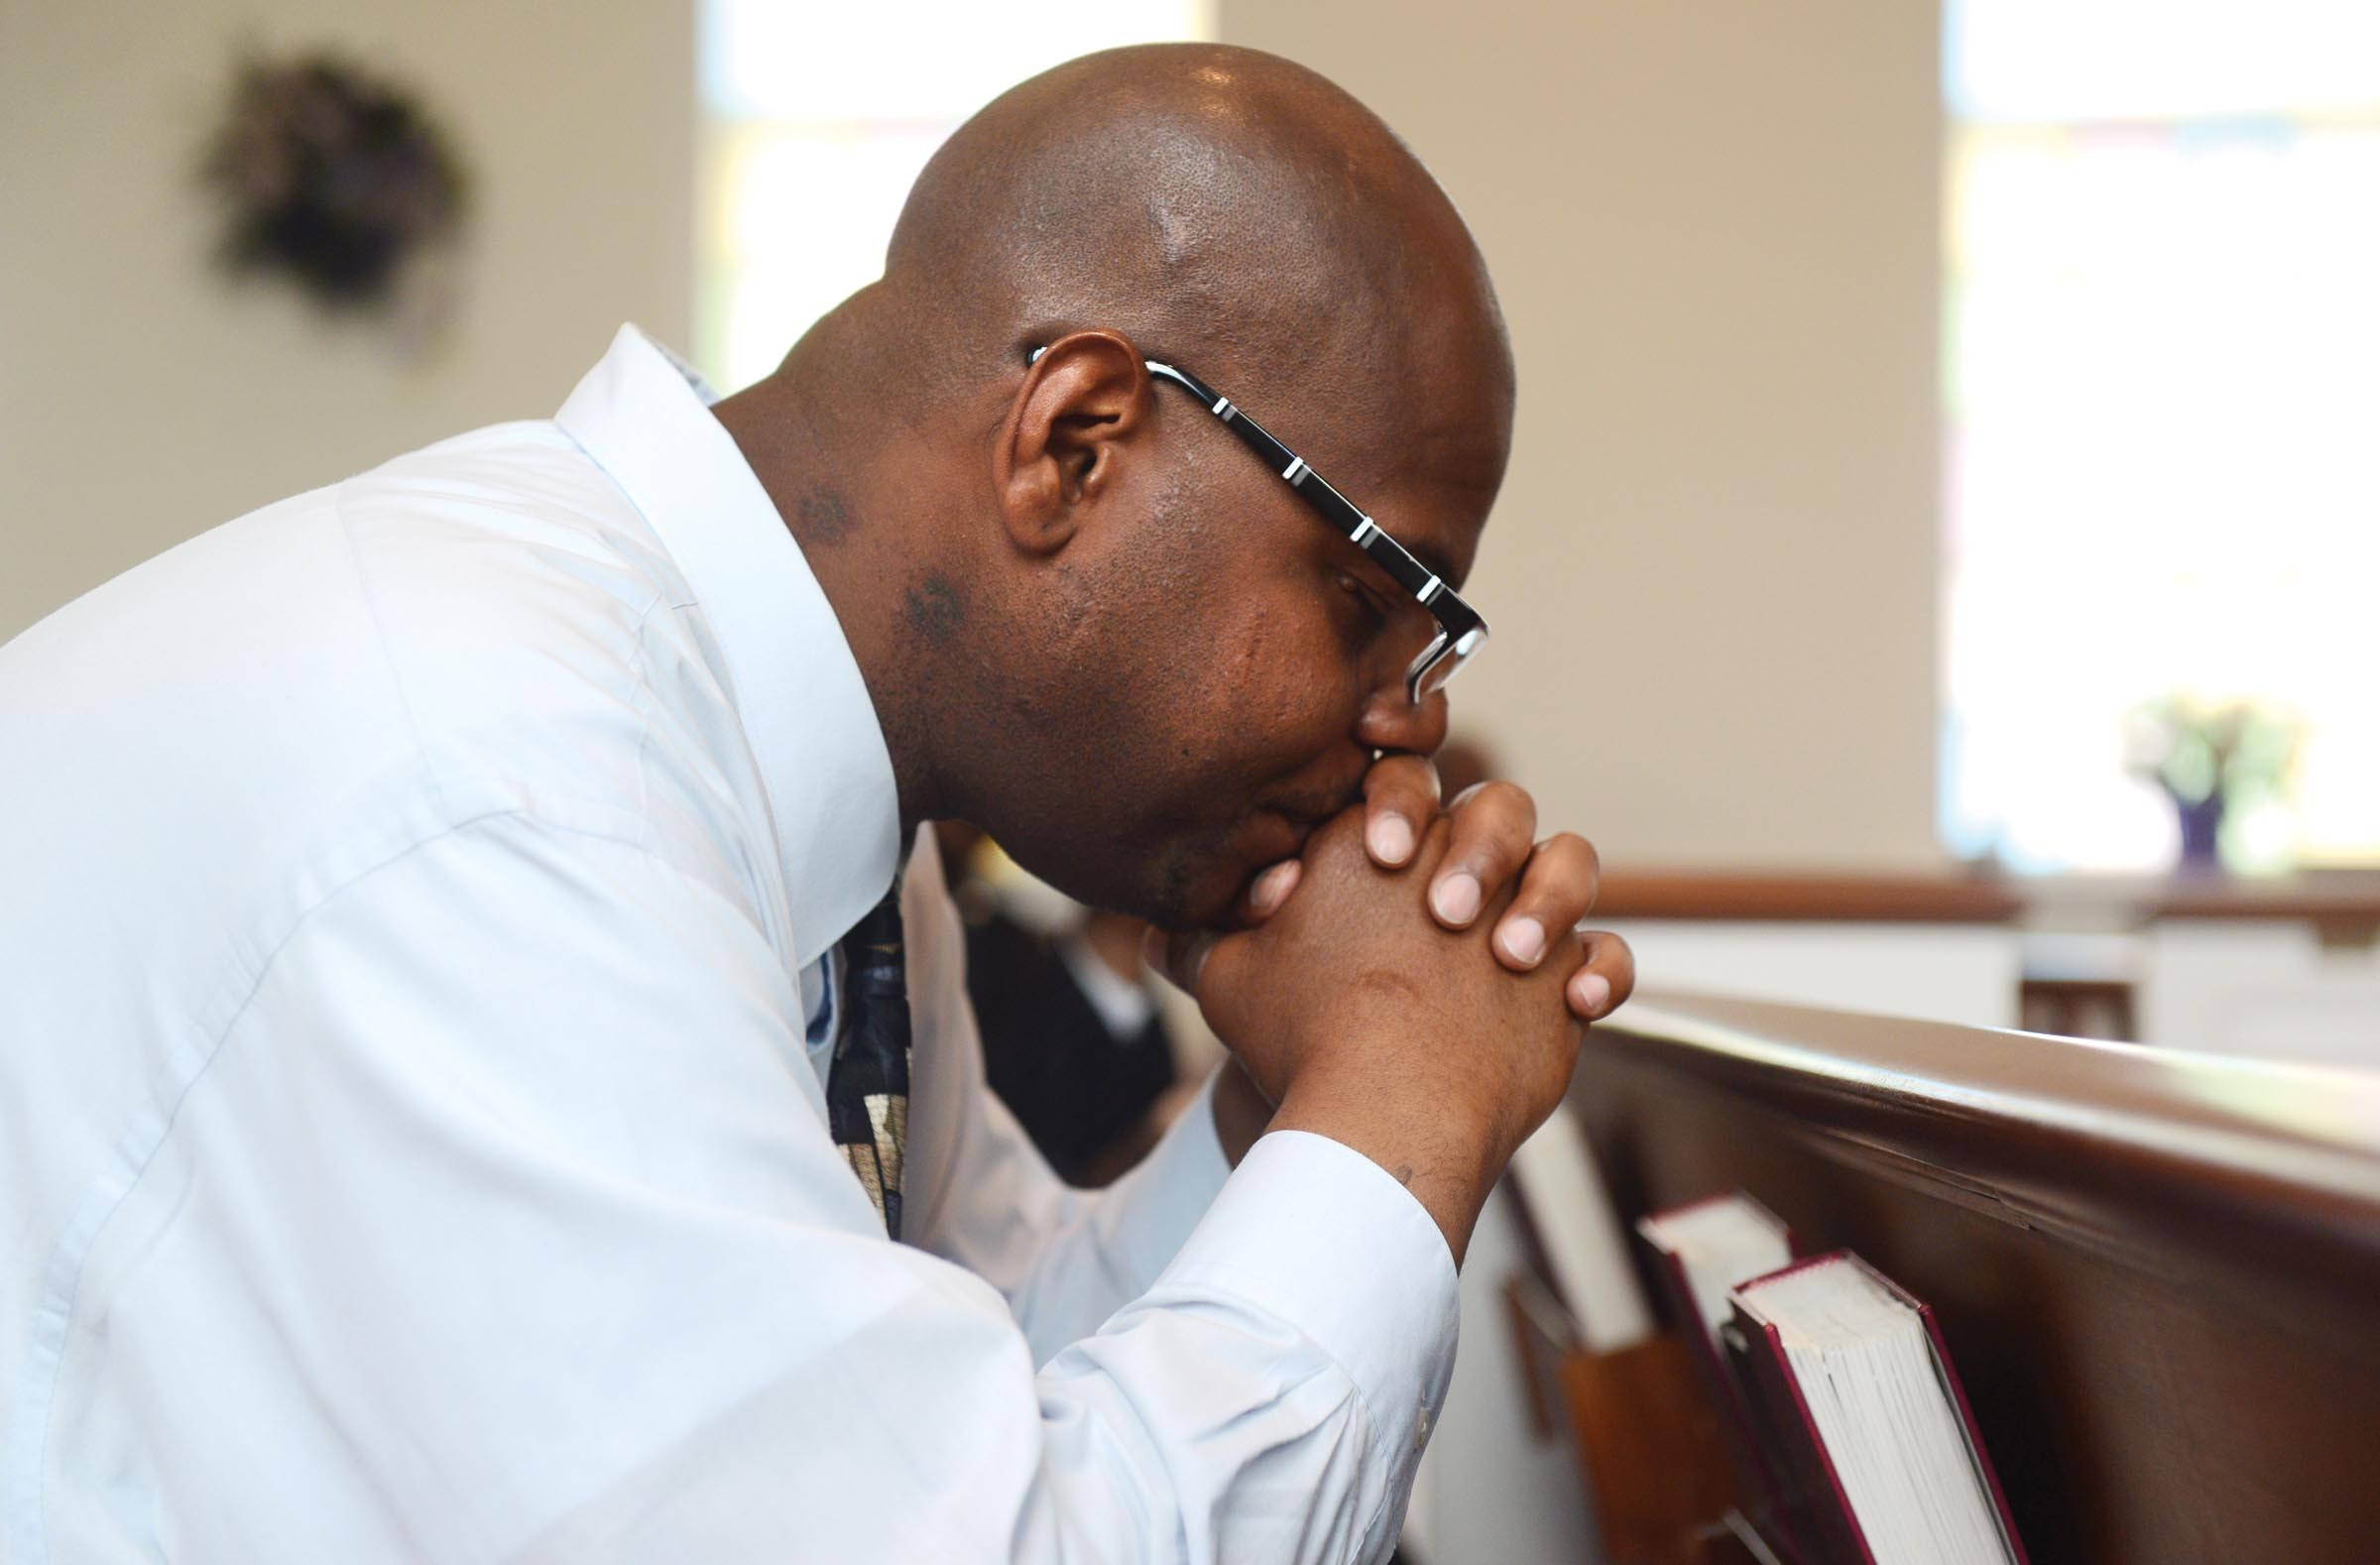 Tyrone Fleming, currently a resident at the Kingdom Life Ministries transition house, spends a quiet moment prior to Sunday's service at Establish Covenant Ministries International. - SCOTT ELMQUIST